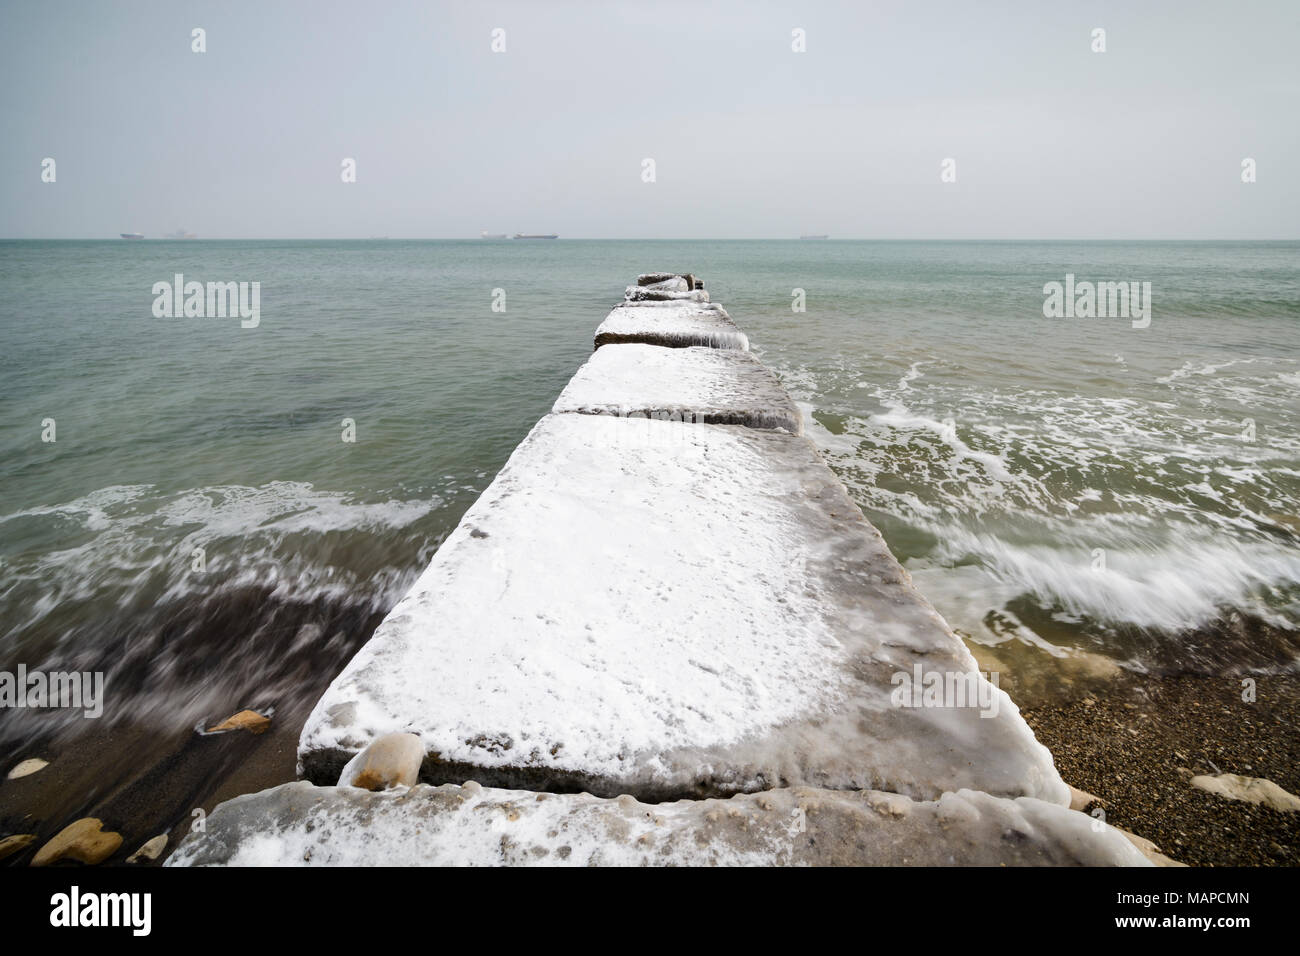 Concrete pier with ice and snow in Varna, Bulgaria Stock Photo